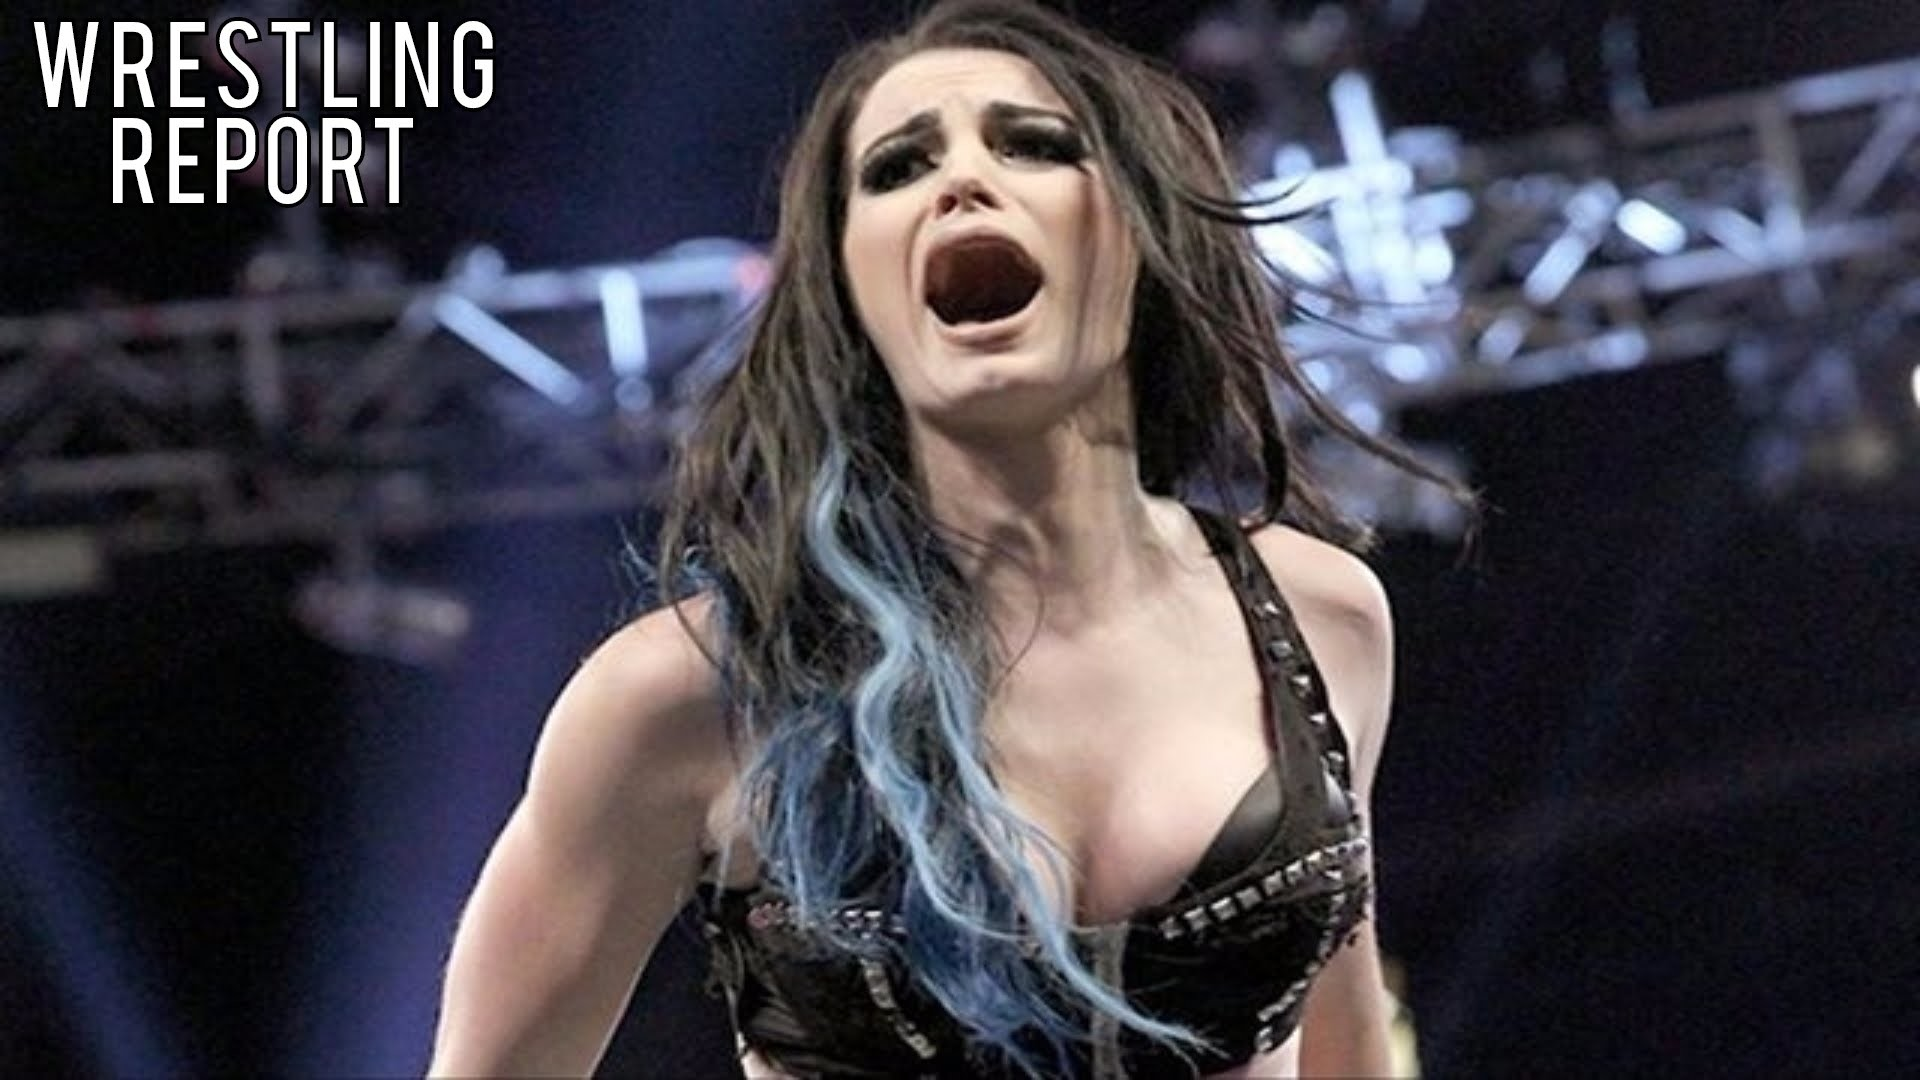 Paige Suspended by WWE, Vince McMahon Sells $30 Million in WWE Shares –  Wrestling Report